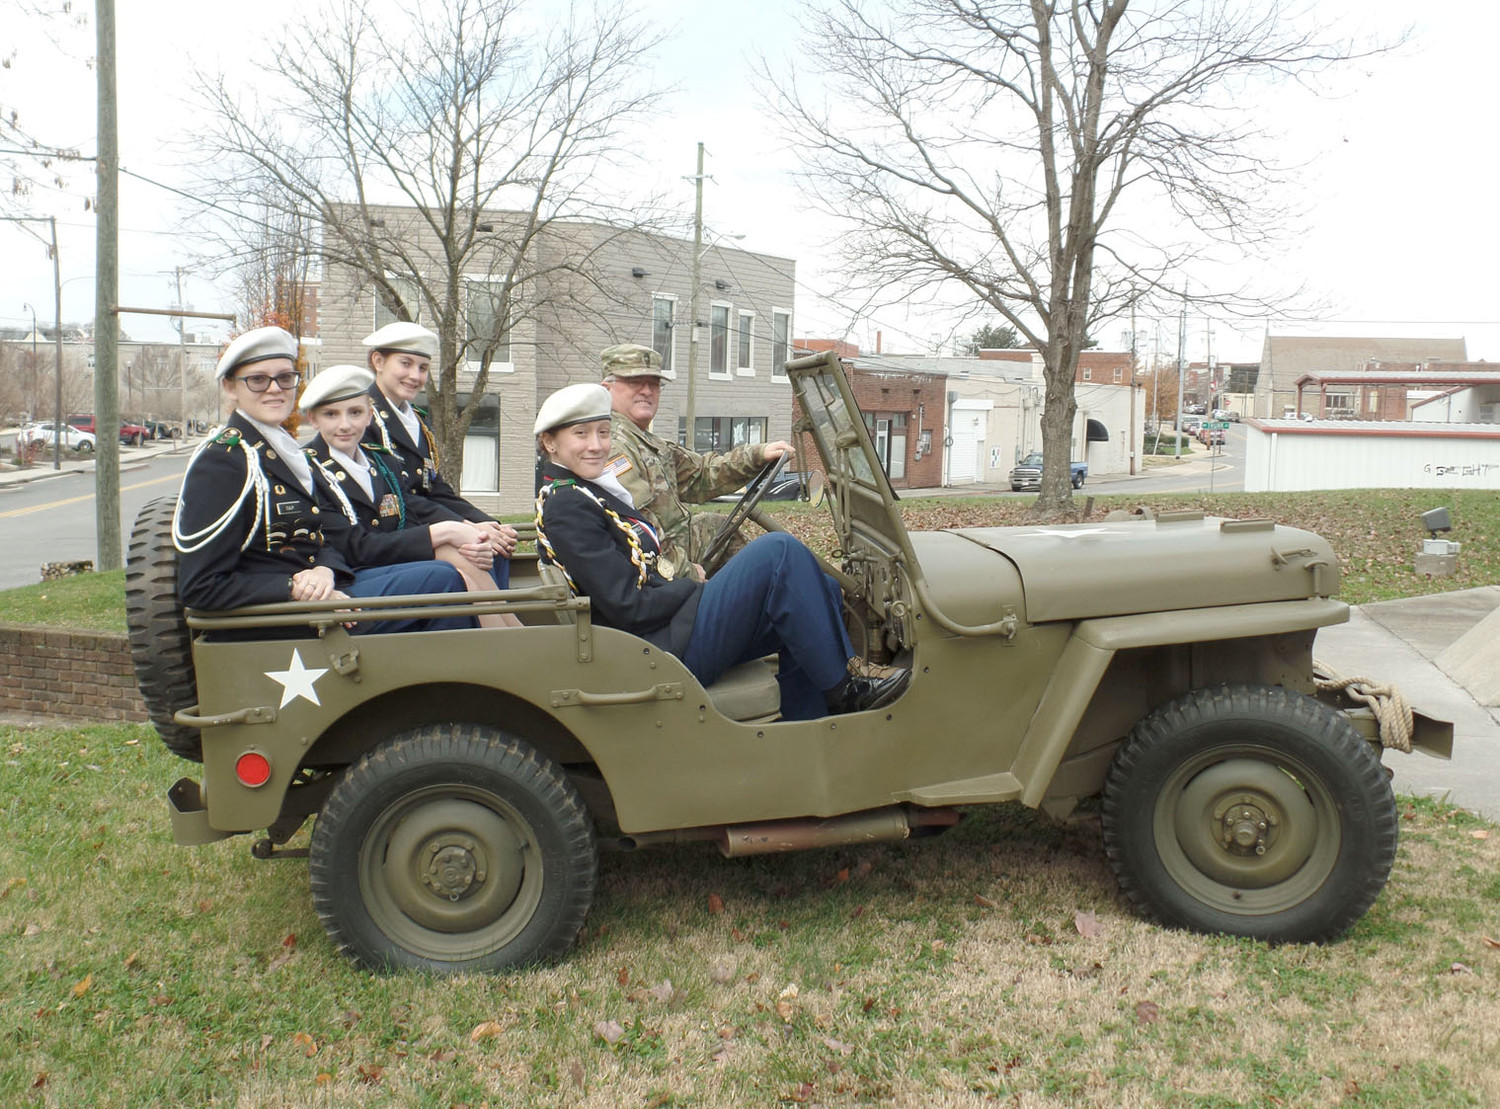 BEFORE A PEARL HARBOR CEREMONY, members of the Bradley Central High School JROTC and their instructor, Sgt. 1st Class Roger Wright, paused for a photo in the Army Jeep that was parked outside for the Pearl Harbor Day remembrance ceremony.  From left are Cadet Marie Culp, Cadet Rachel Fowler, Cadet Olivia McMahan, Cadet Sarah Satterfield and Wright.